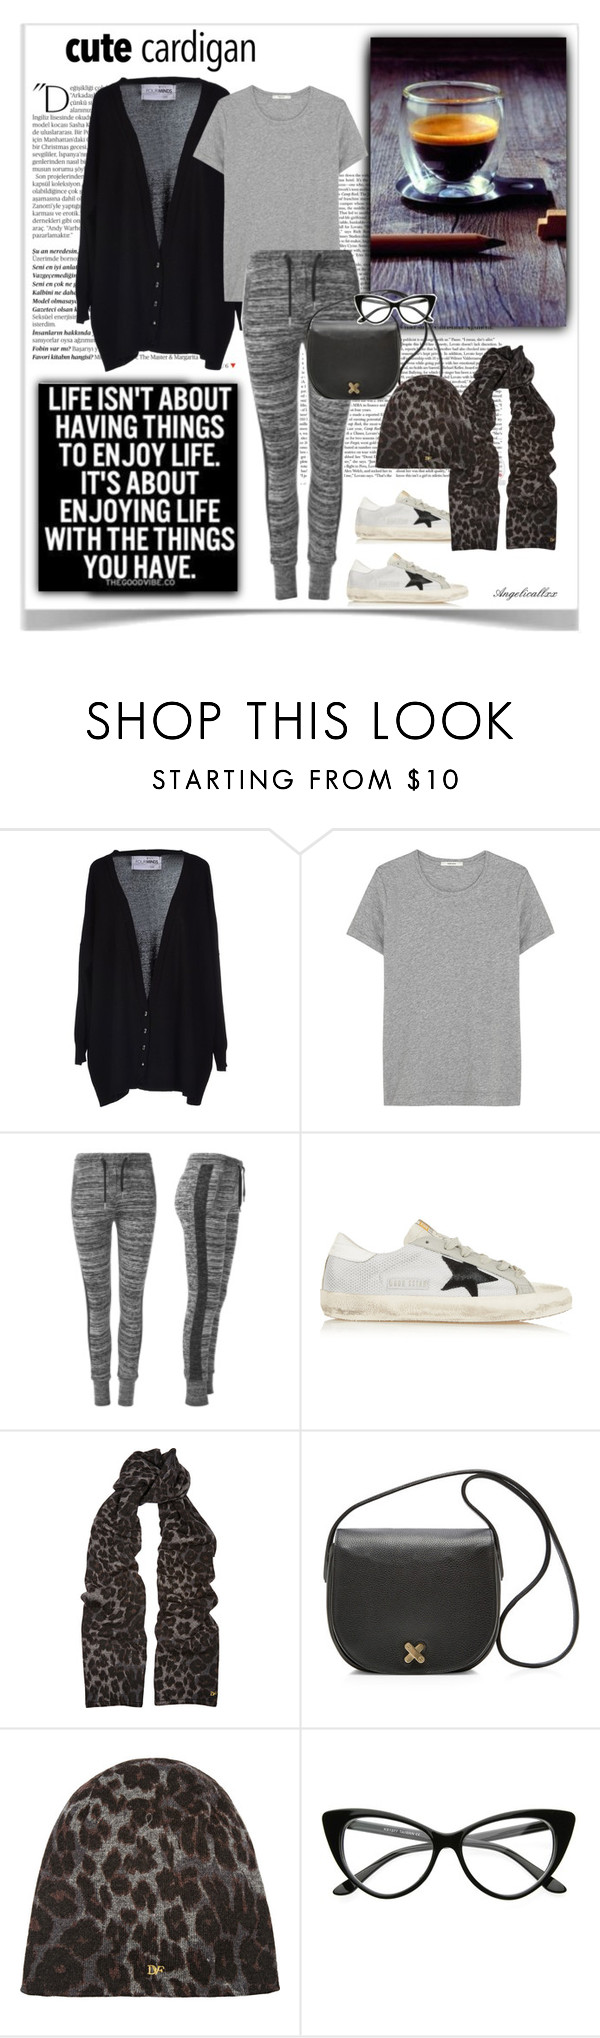 """""""Coffee is so simple and so good"""" by angelicallxx ❤ liked on Polyvore featuring Balmain, FourMinds, ADAM, Golden Goose, Diane Von Furstenberg, Alexander Wang and mycardi"""